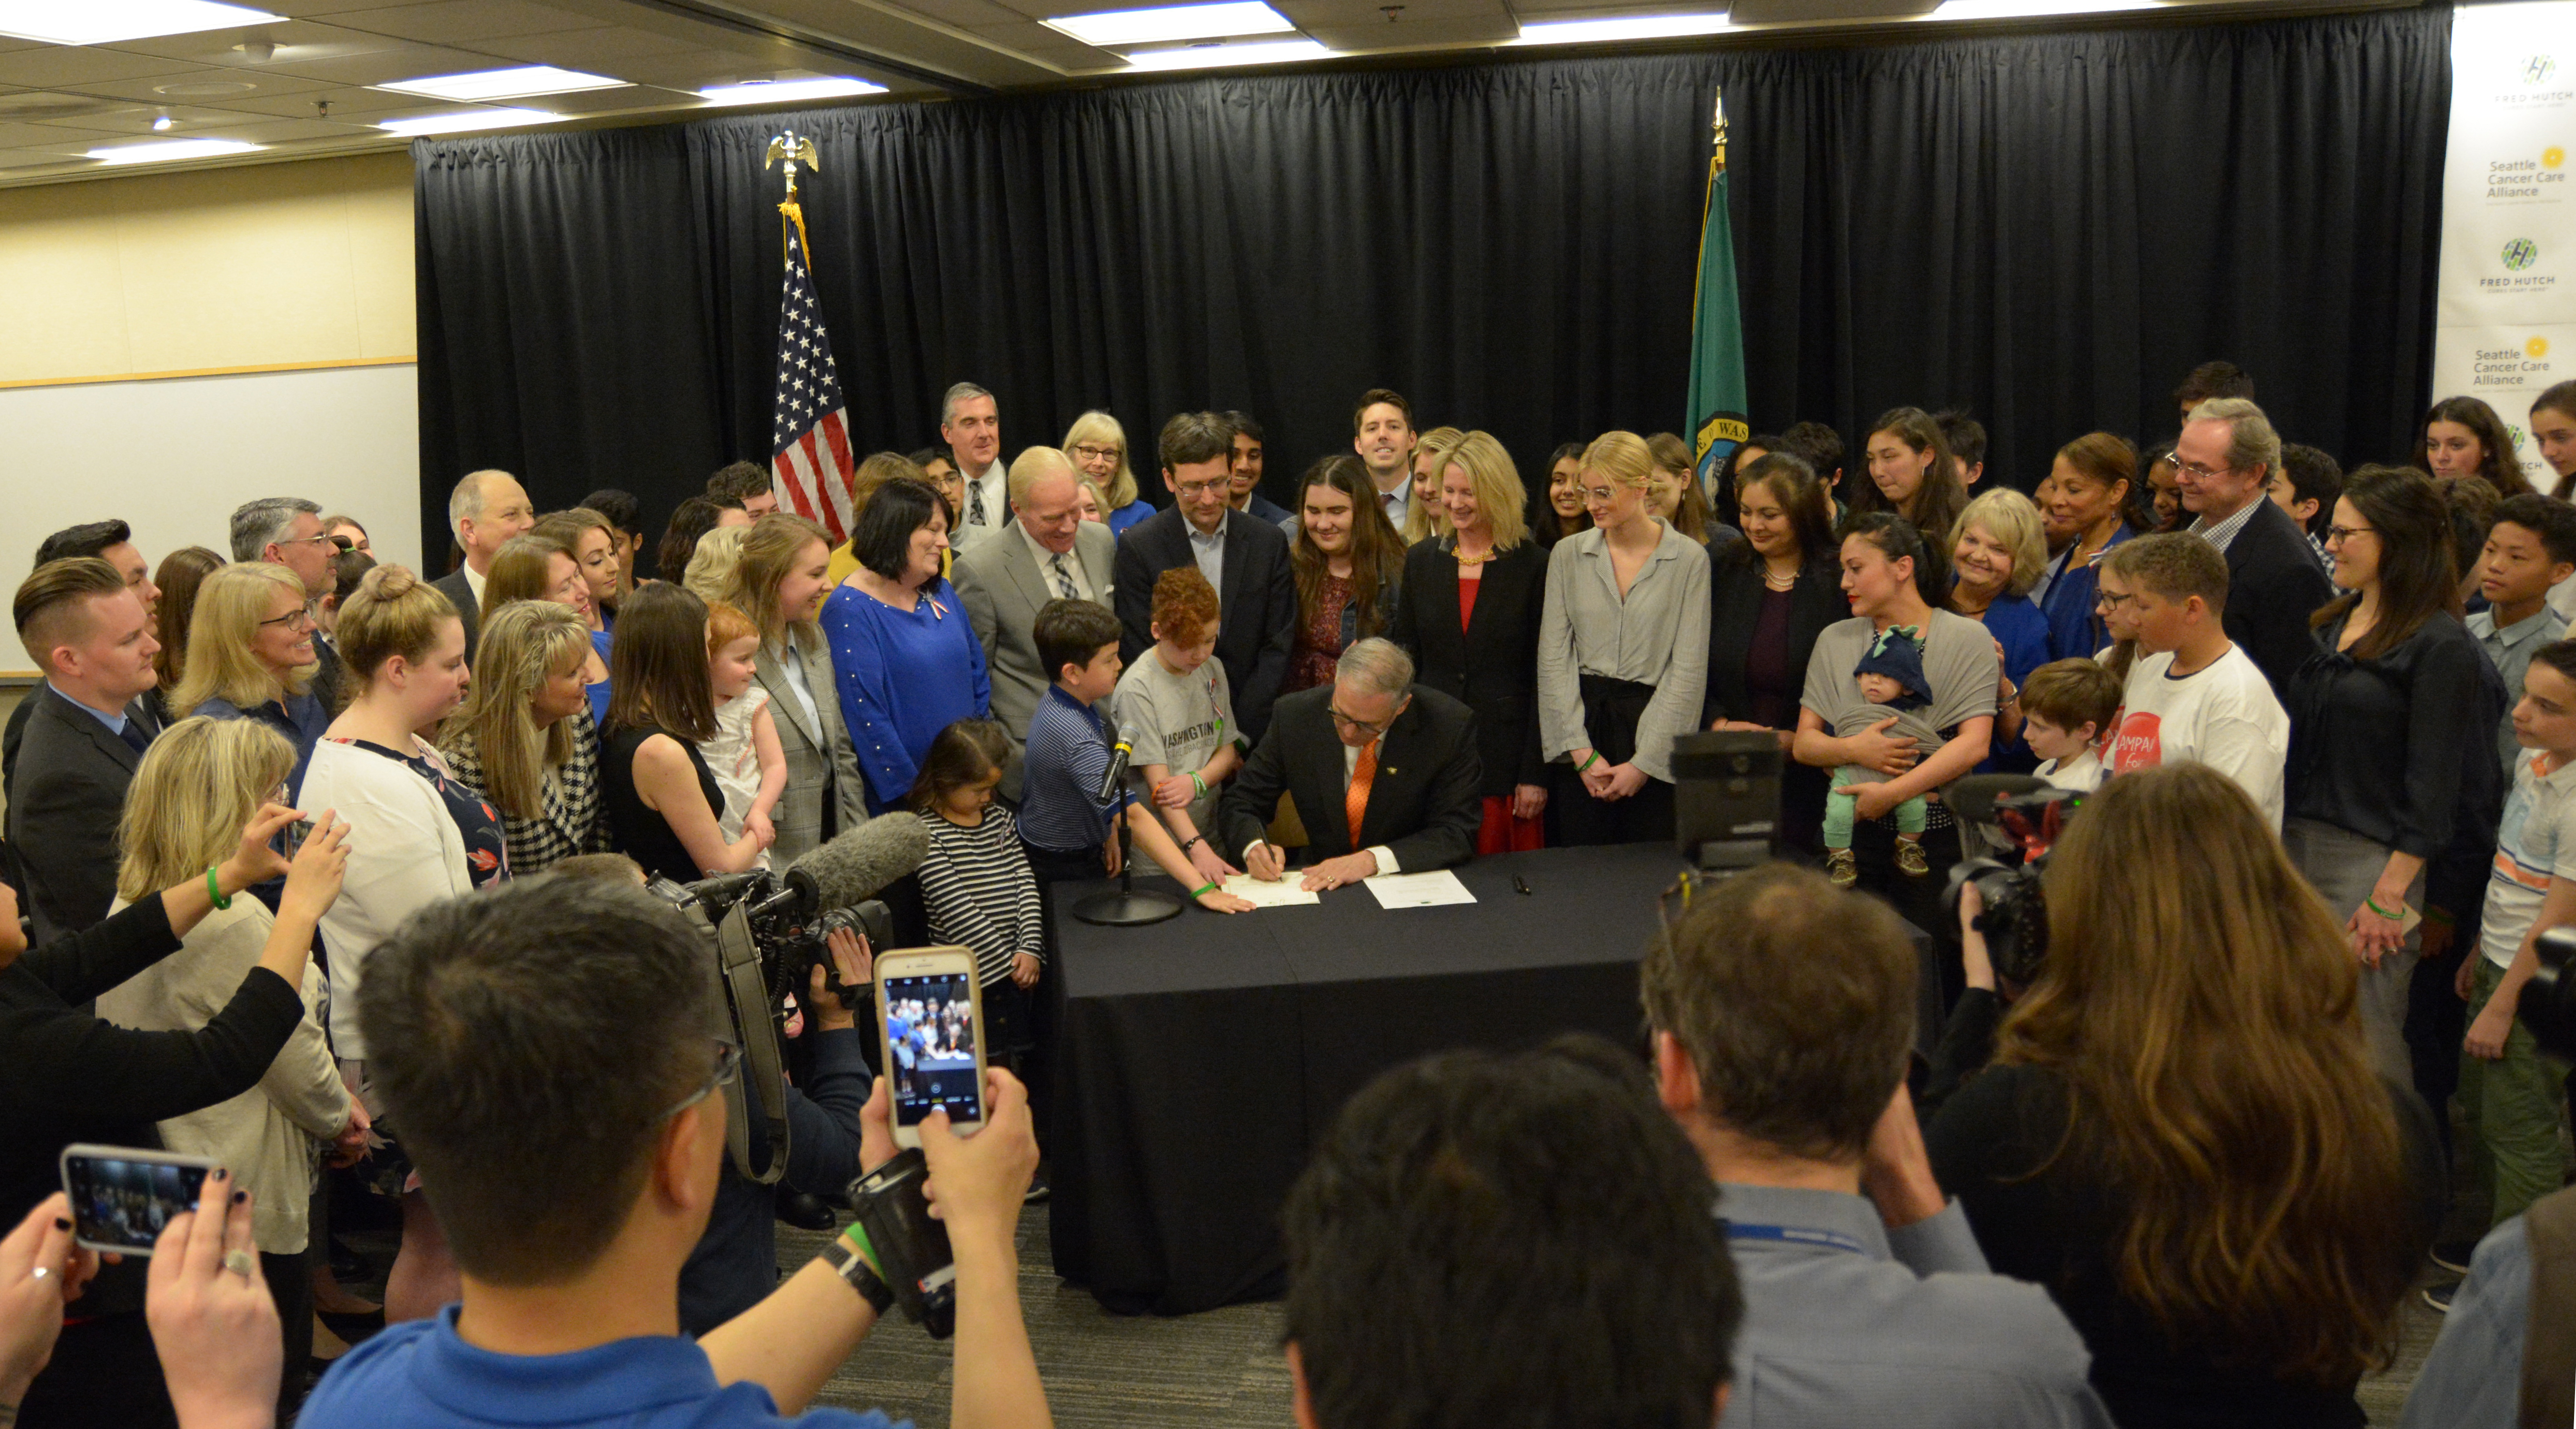 Gov. Jay Inslee signs AG Bob Ferguson's agency request legislation into law. The bill raises the age to purchase tobacco products in Washington from 18 to 21.